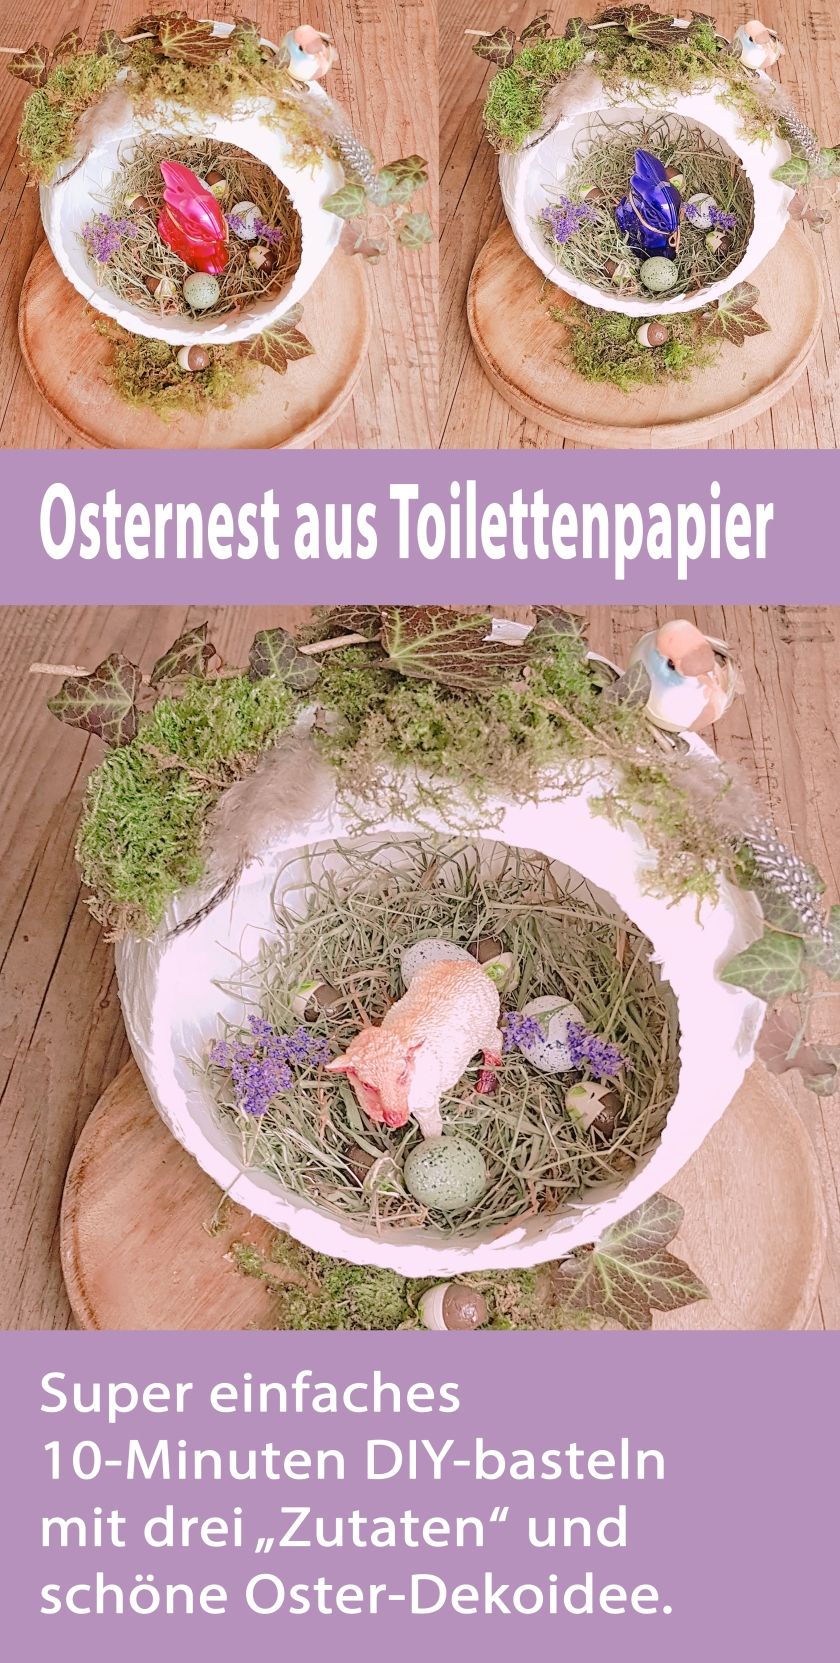 osternest_pintrest.jpg